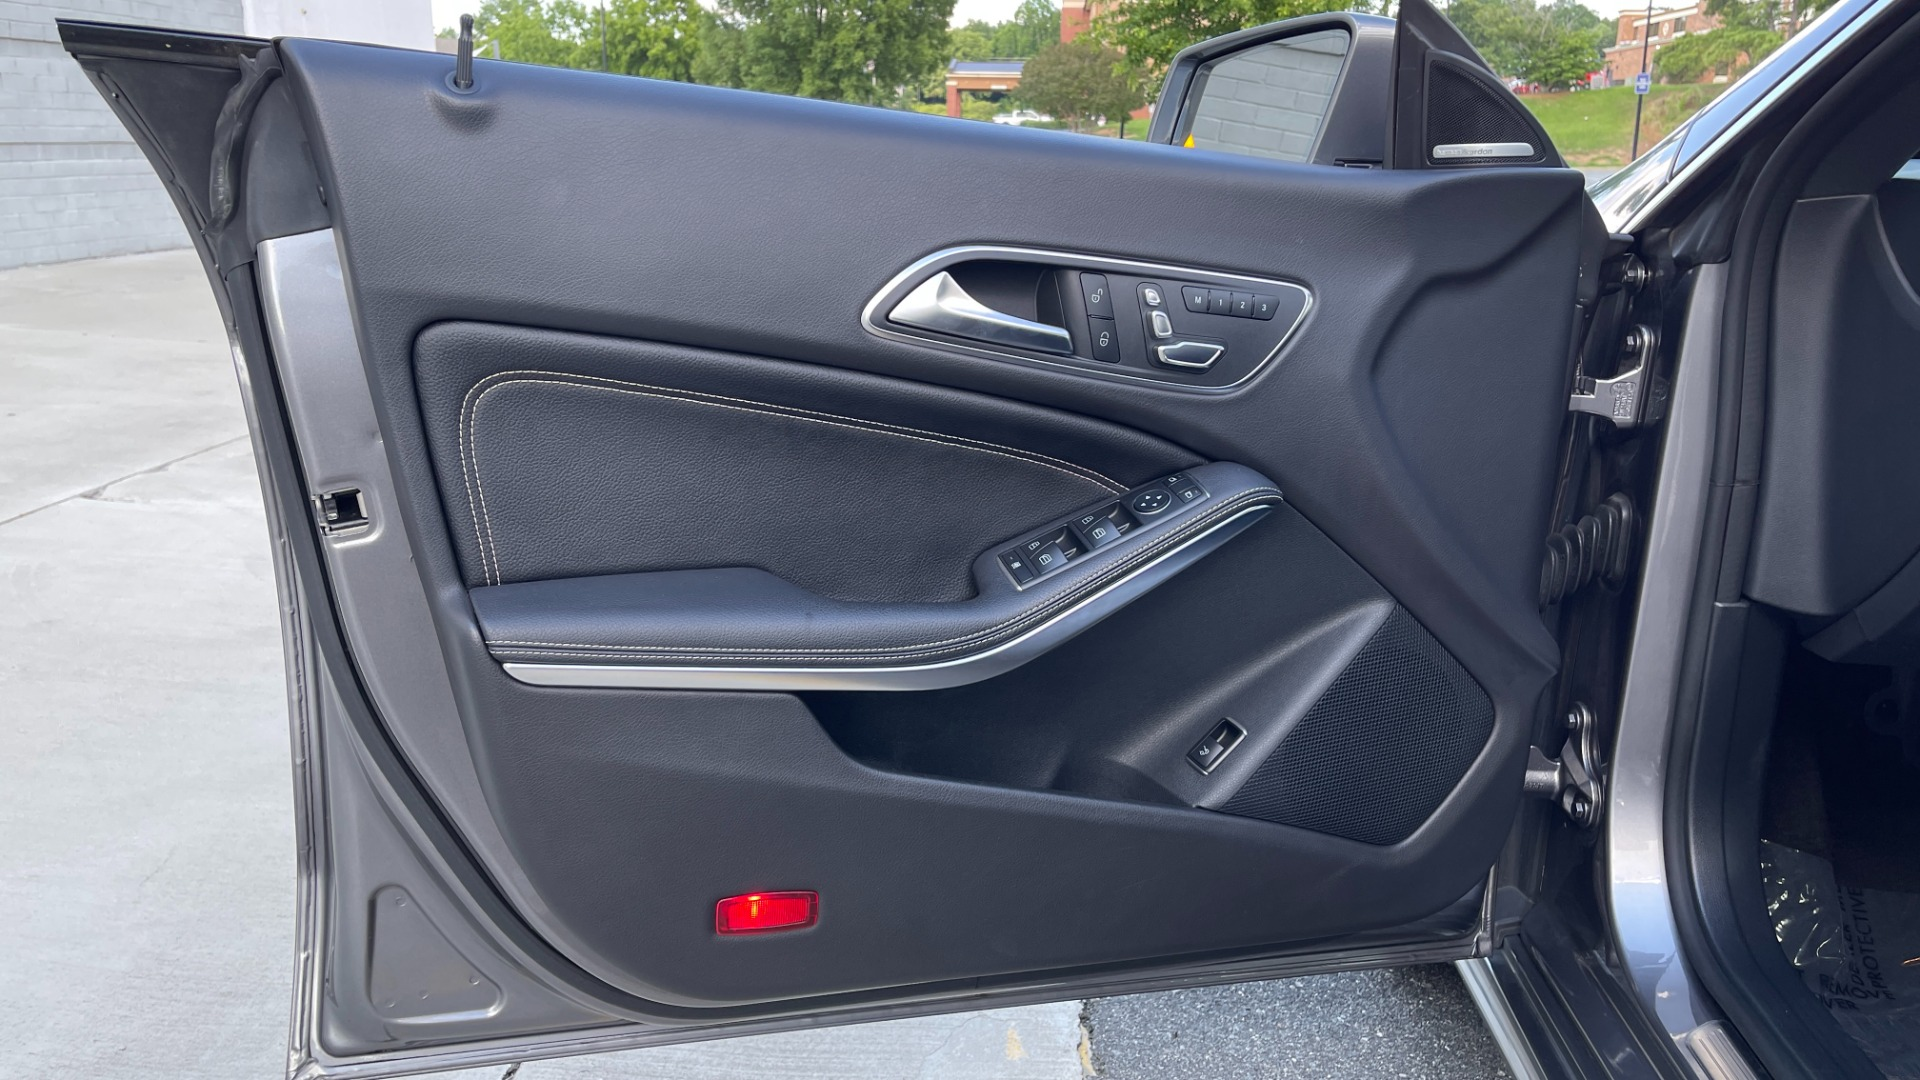 Used 2019 Mercedes-Benz CLA 250 4MATIC PREM & CONV PKG / APPLE / PANO-ROOF / H/K SND / REARVIEW for sale $29,795 at Formula Imports in Charlotte NC 28227 26